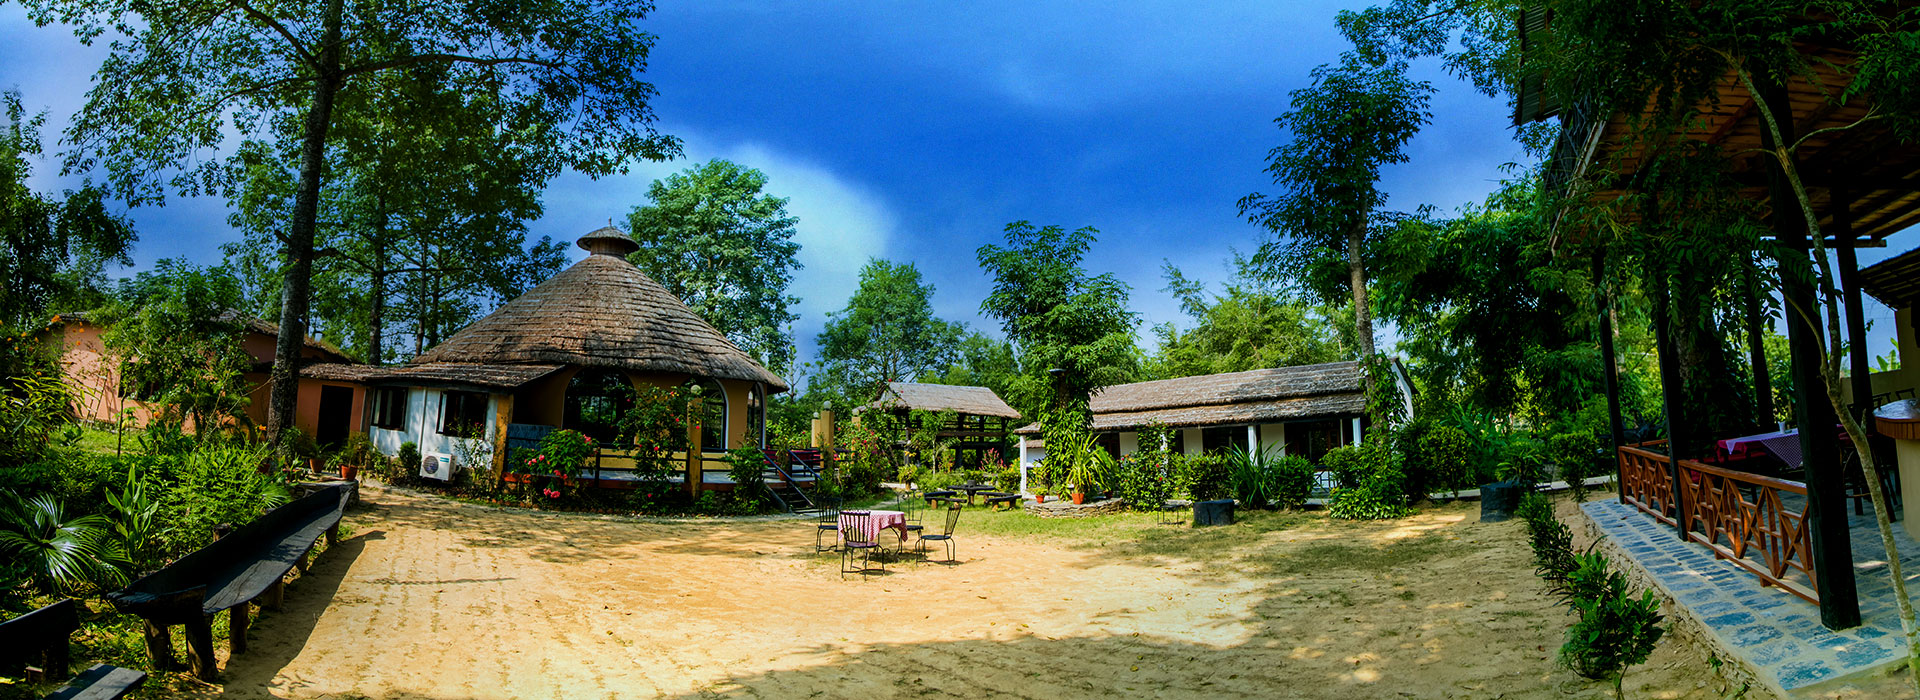 Resort in Chitwan